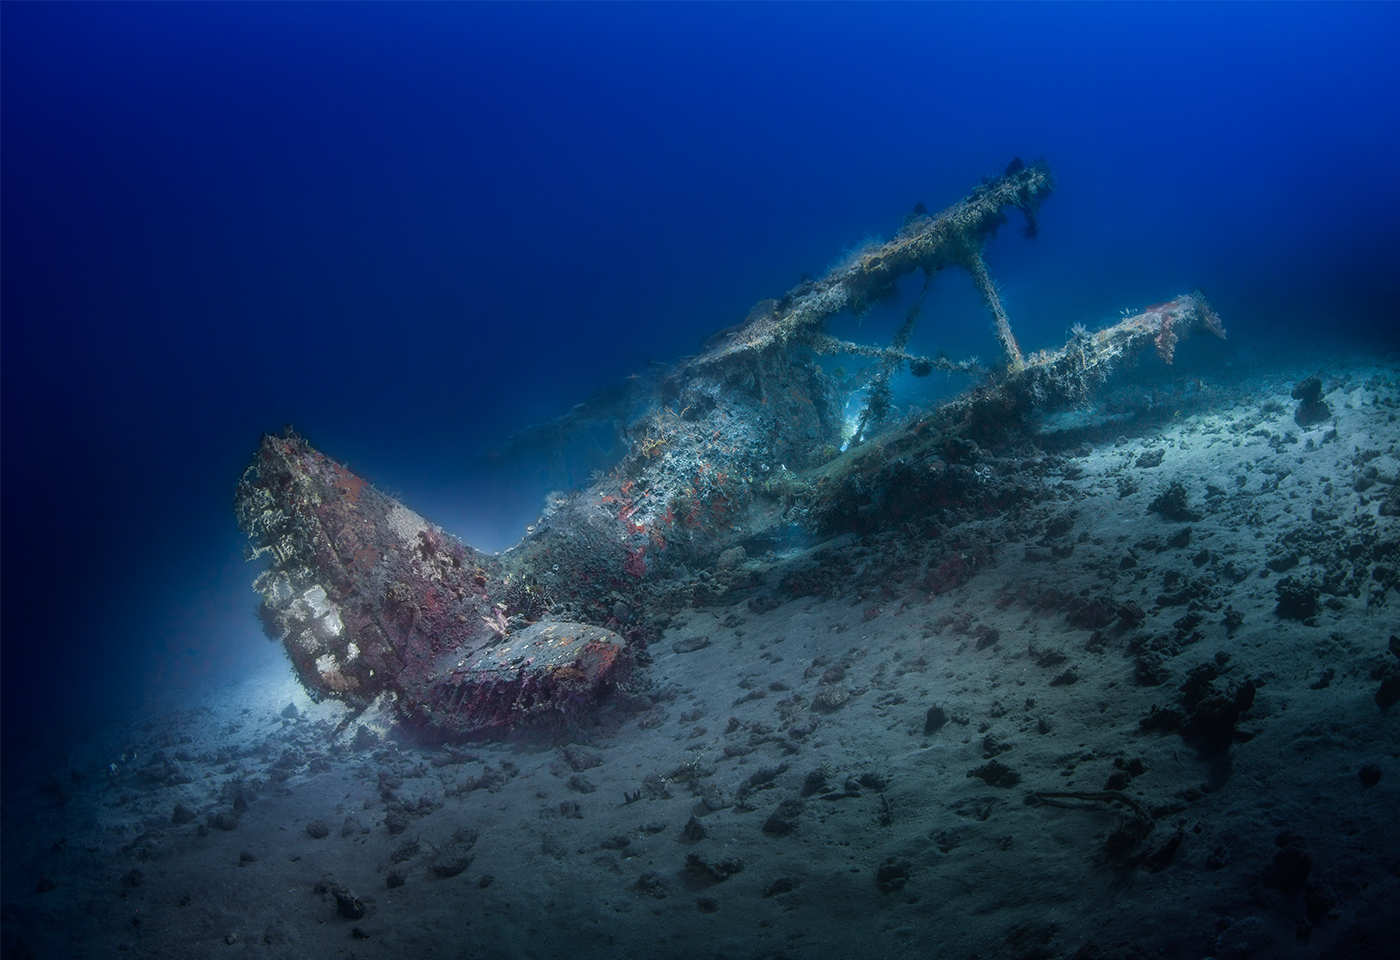 Light Painting Underwater